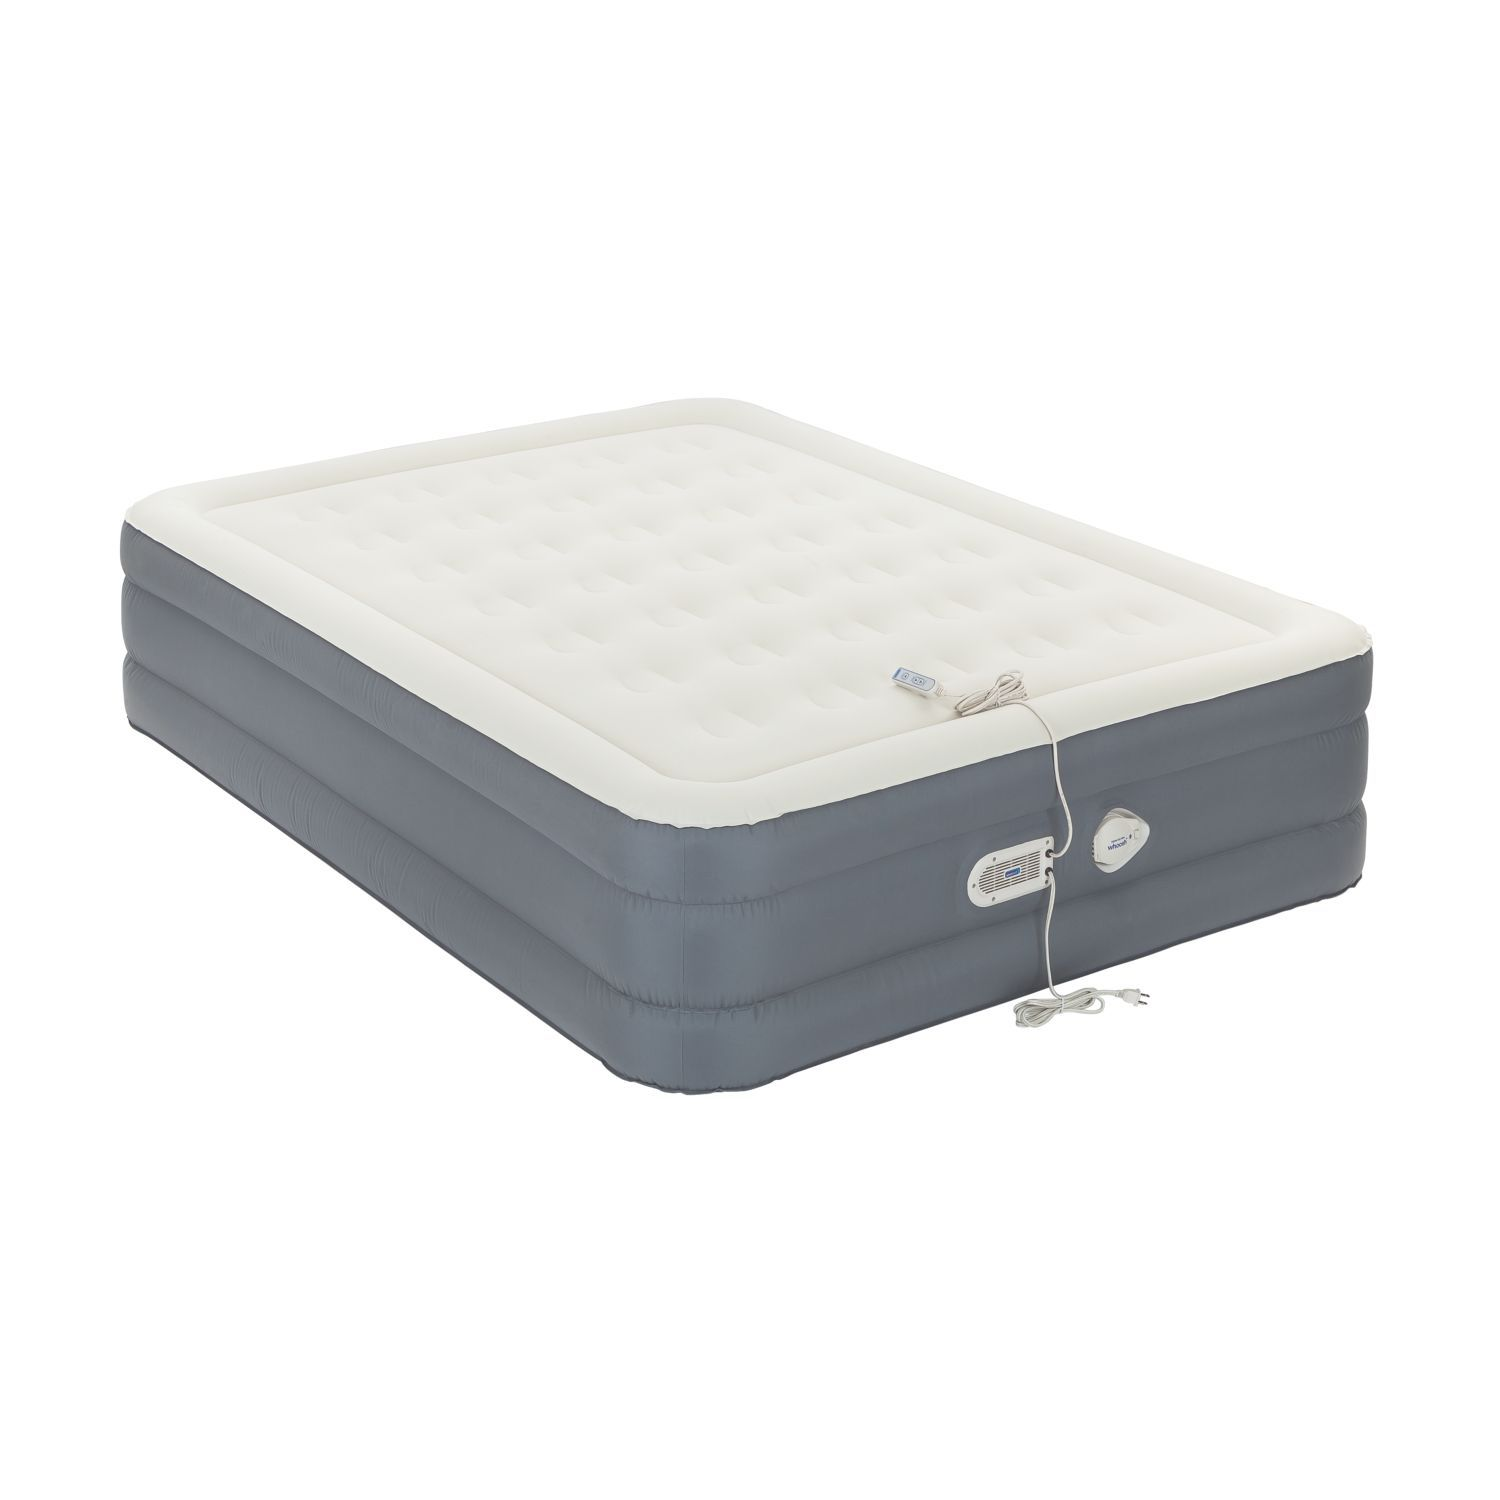 Spectacular AeroBed Air Bed